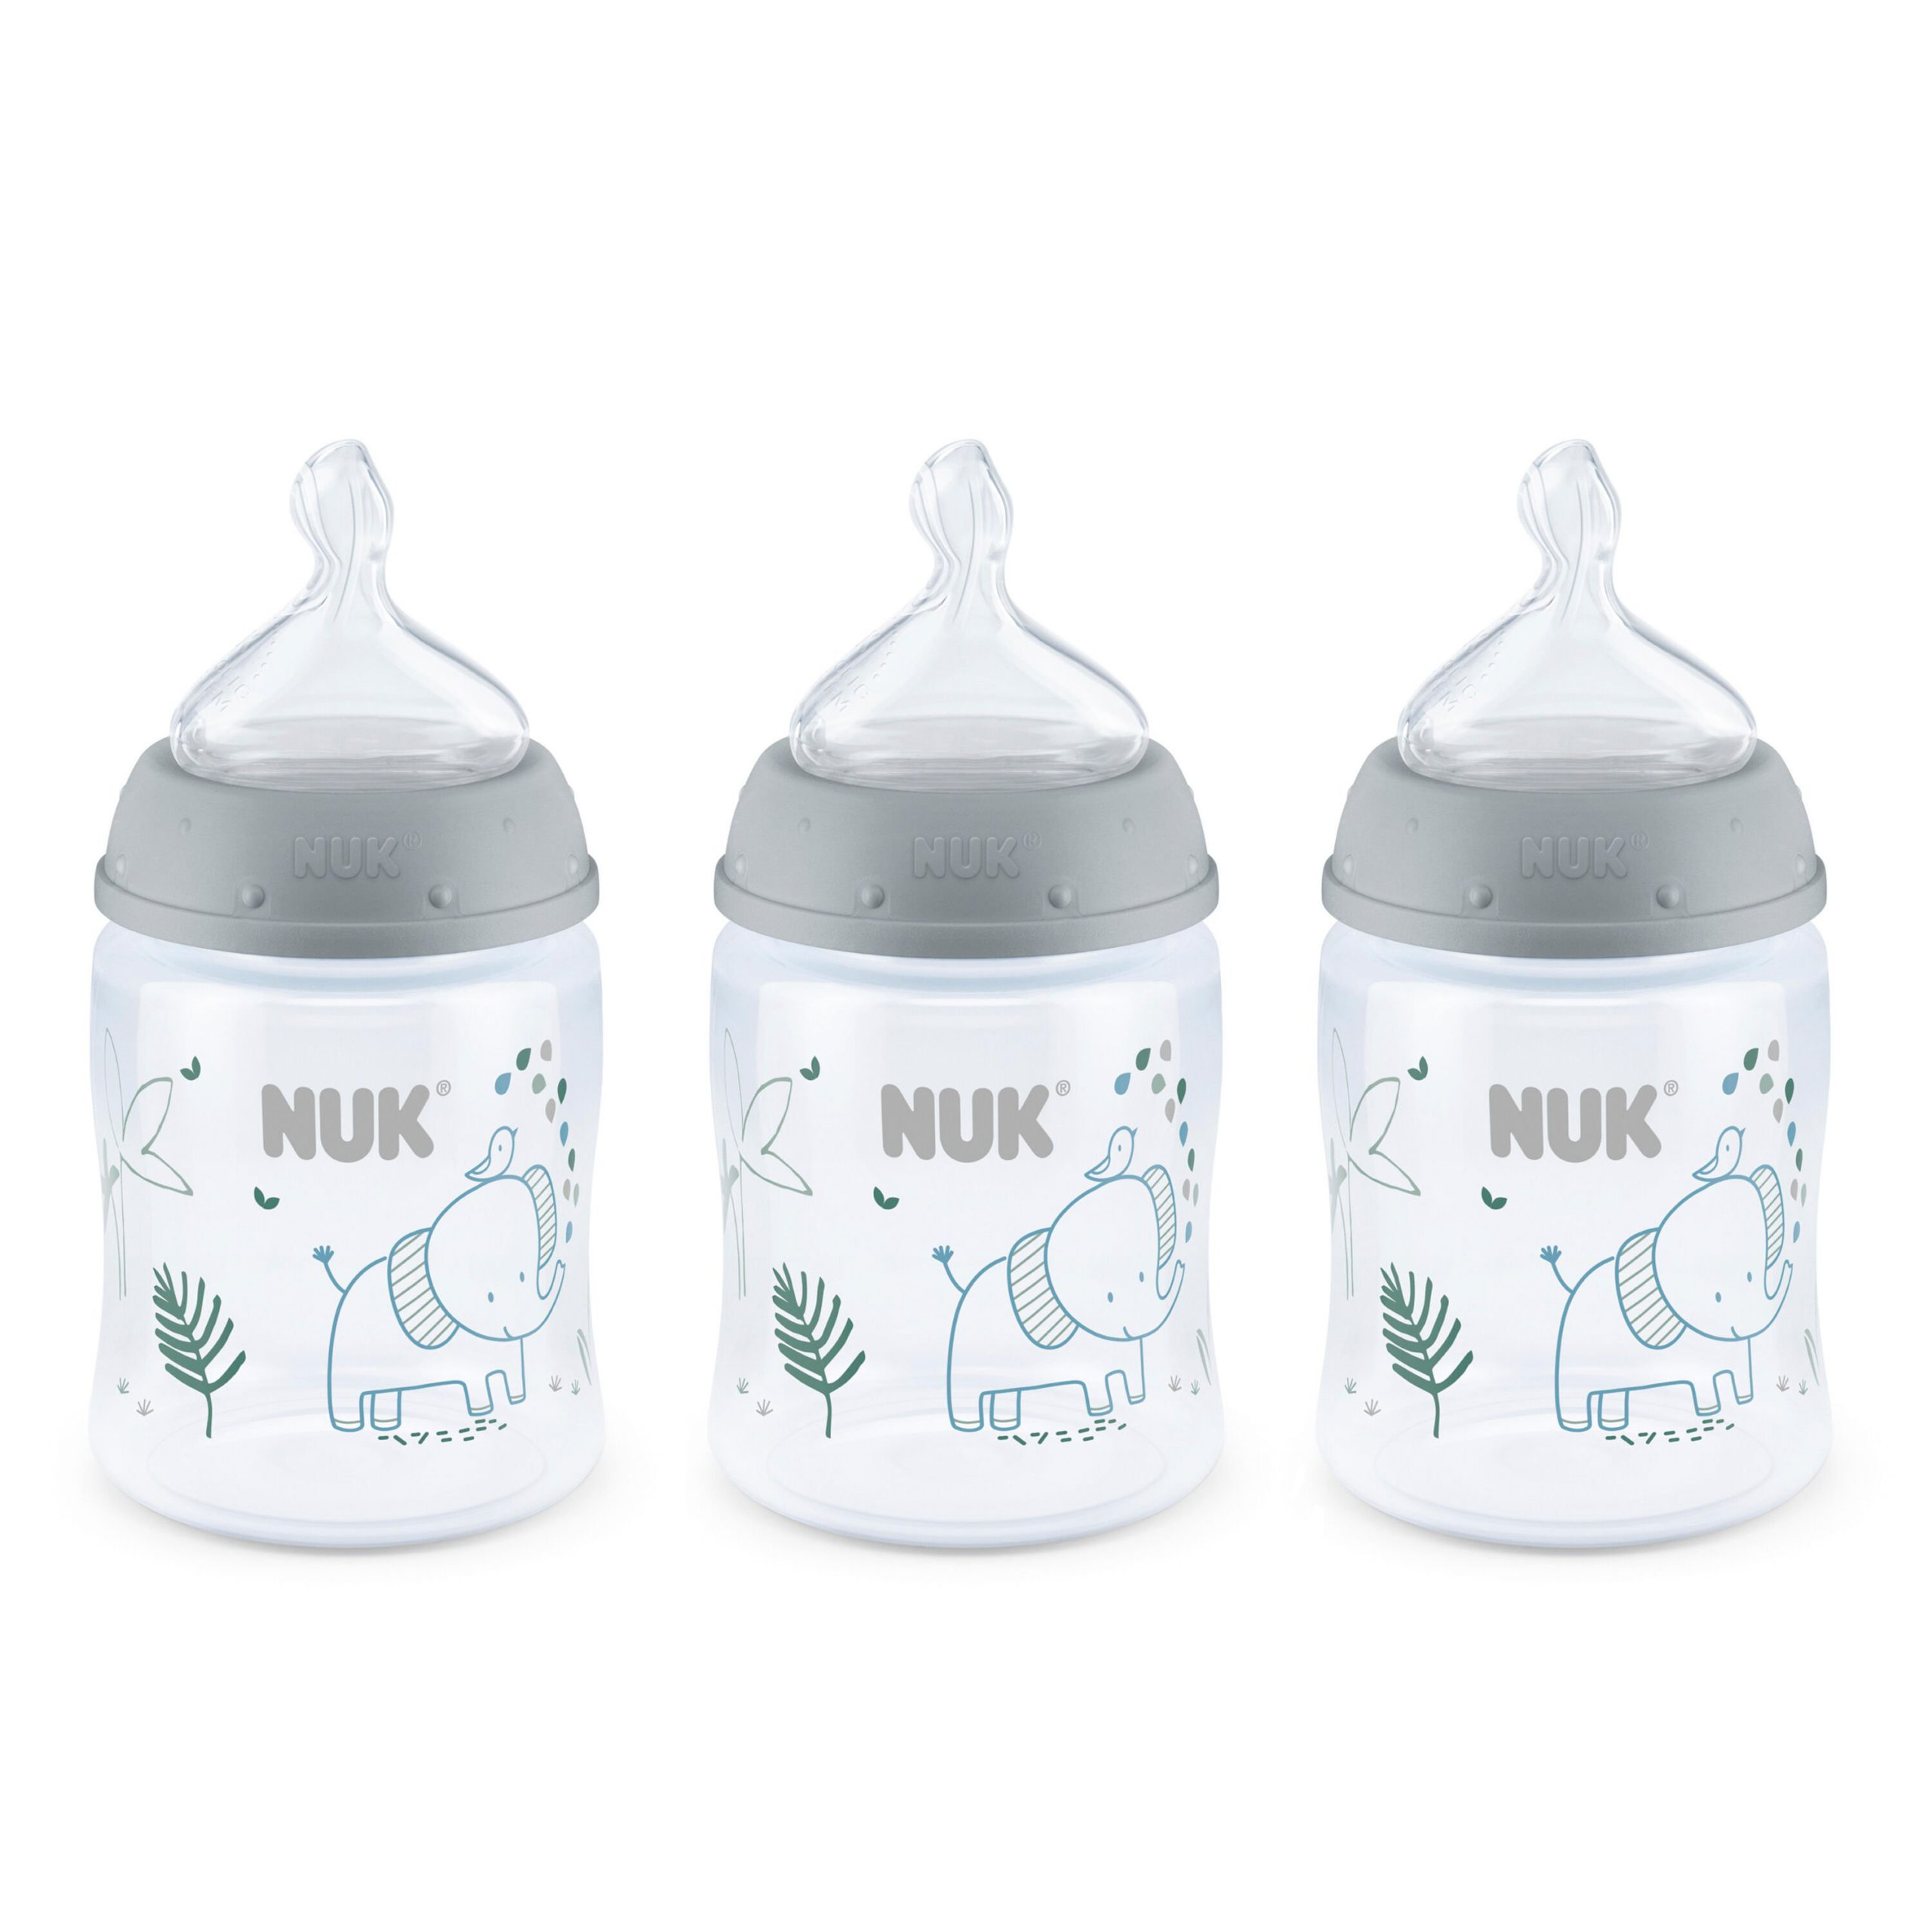 NUK® Smooth Flow™ Anti-Colic Bottle, 5 oz, 3-Pack, Elephants Product Image 1 of 9